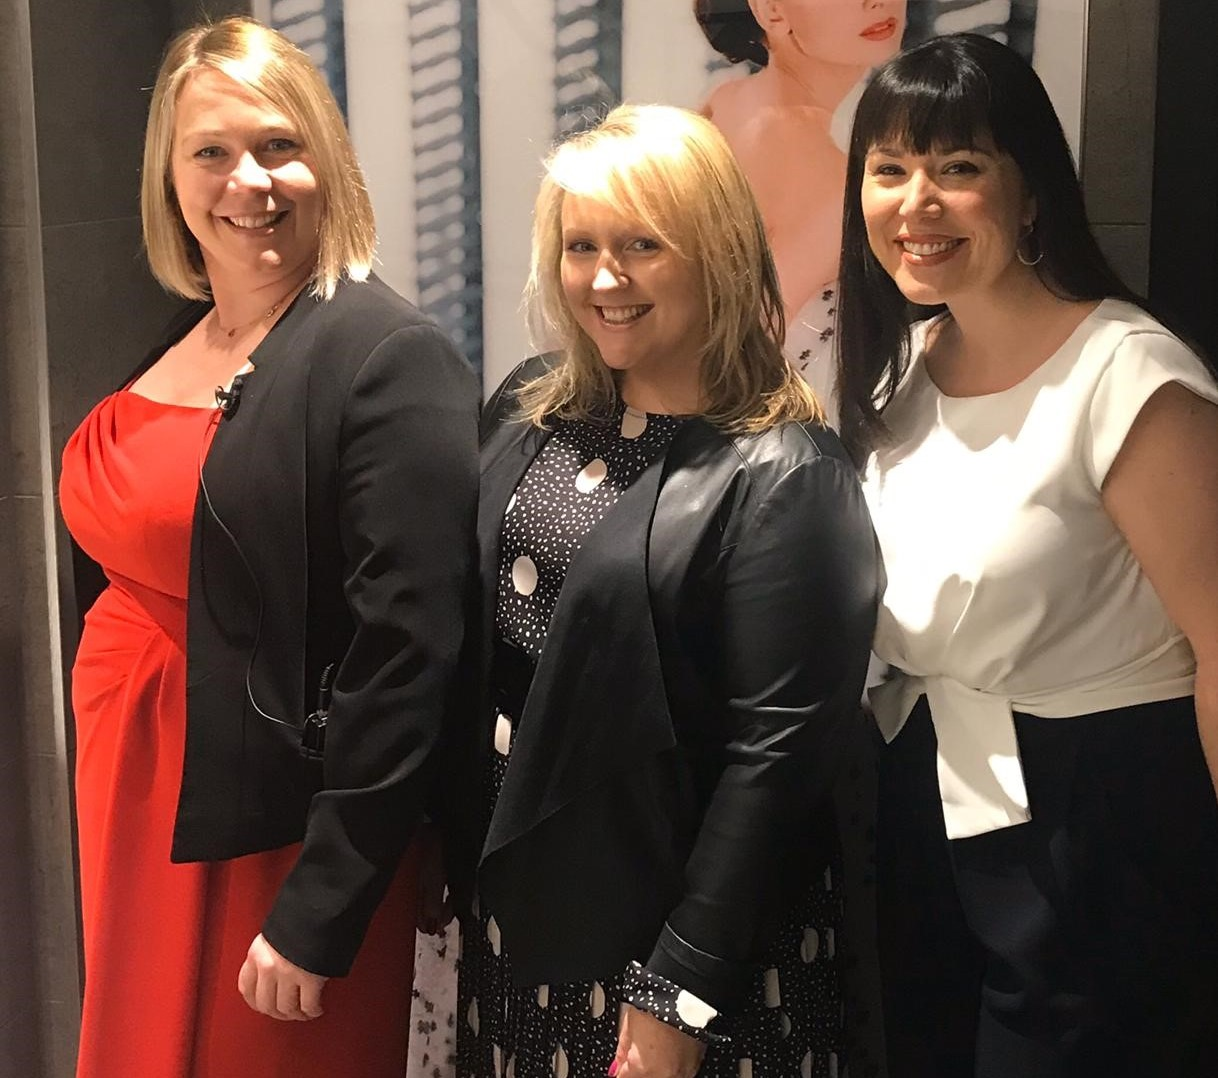 Katy Rogers (Business Director), Sarah Sadler (Finance Director) and Emma Foster (Marketing Director) - three members of our Executive Team.